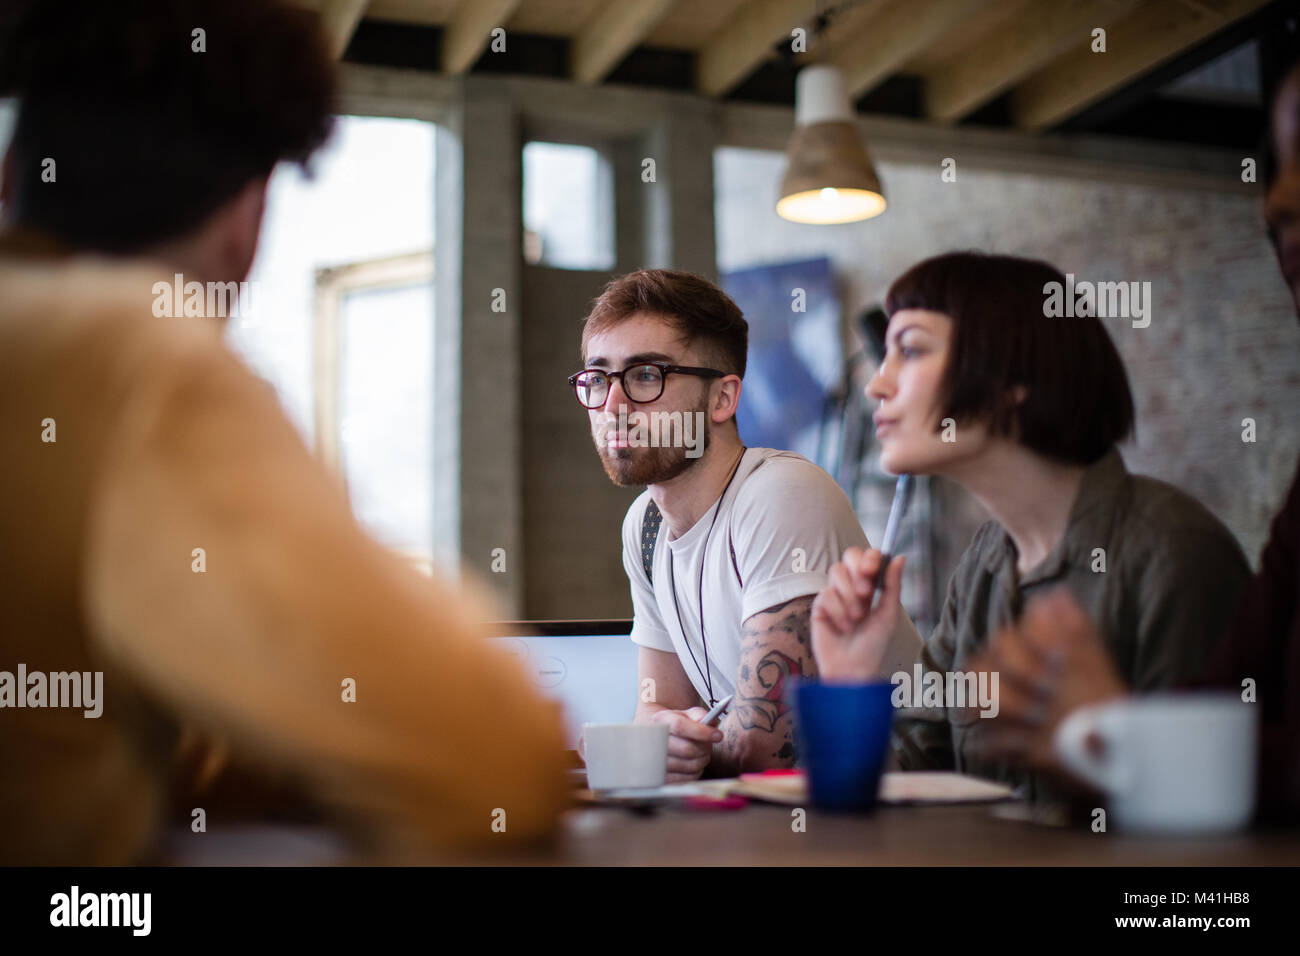 Group of young entrepreneurs listening to a presentation - Stock Image